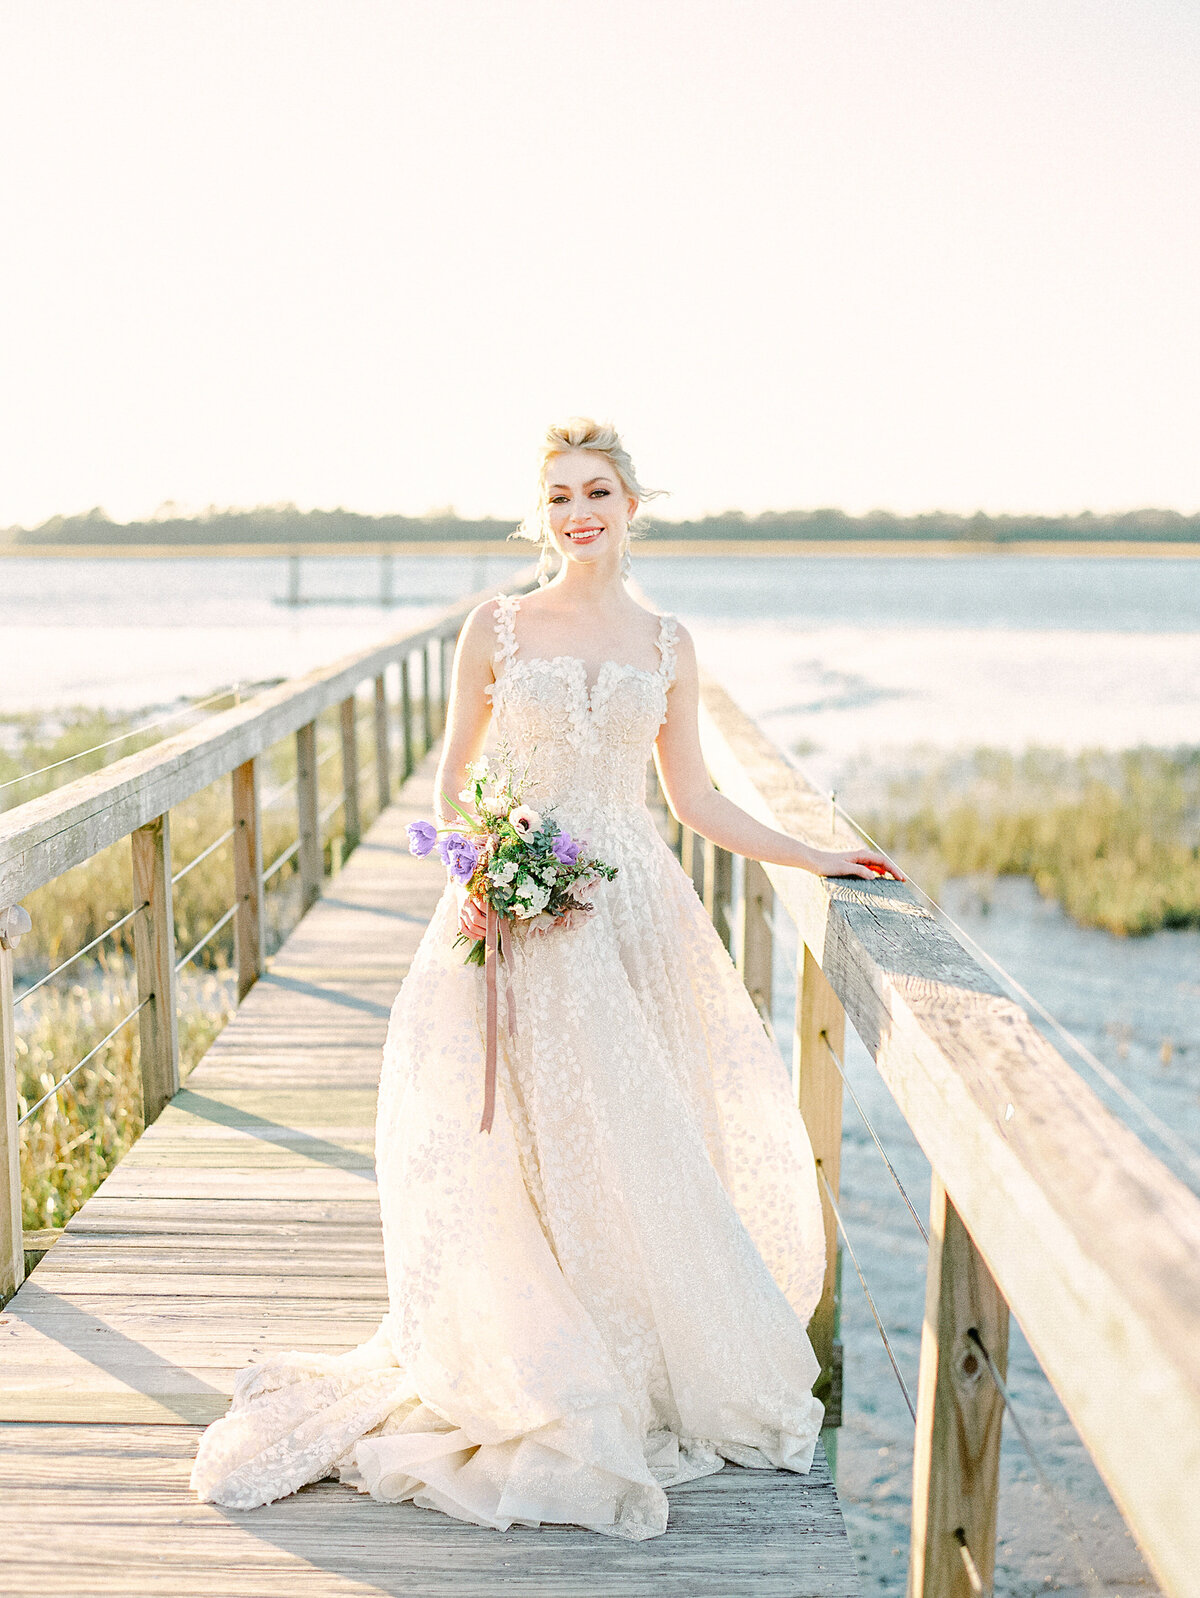 Bride with purple floral bouquet smiling on wooden dock on river at Charleston Wedding